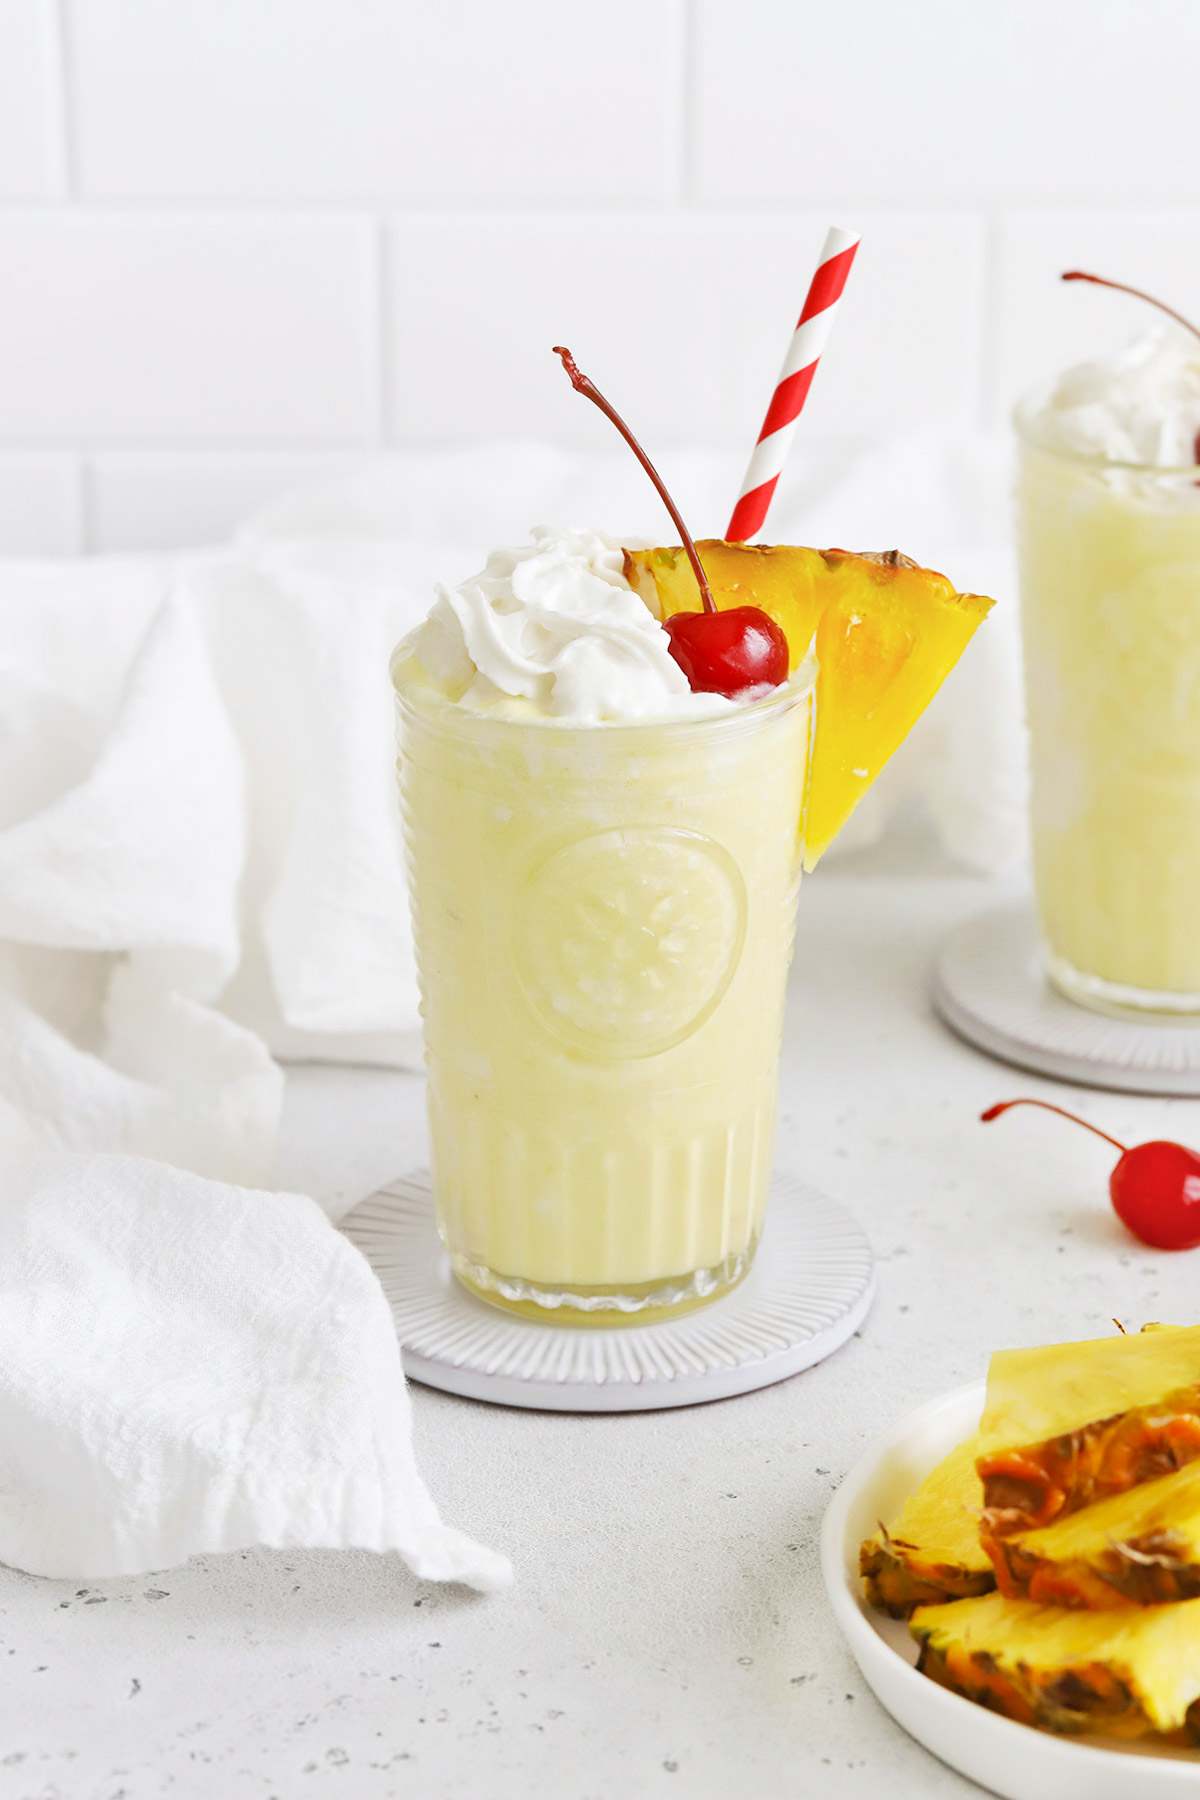 Front view of a virgin pina colada with whipped cream and a cherry on a white background